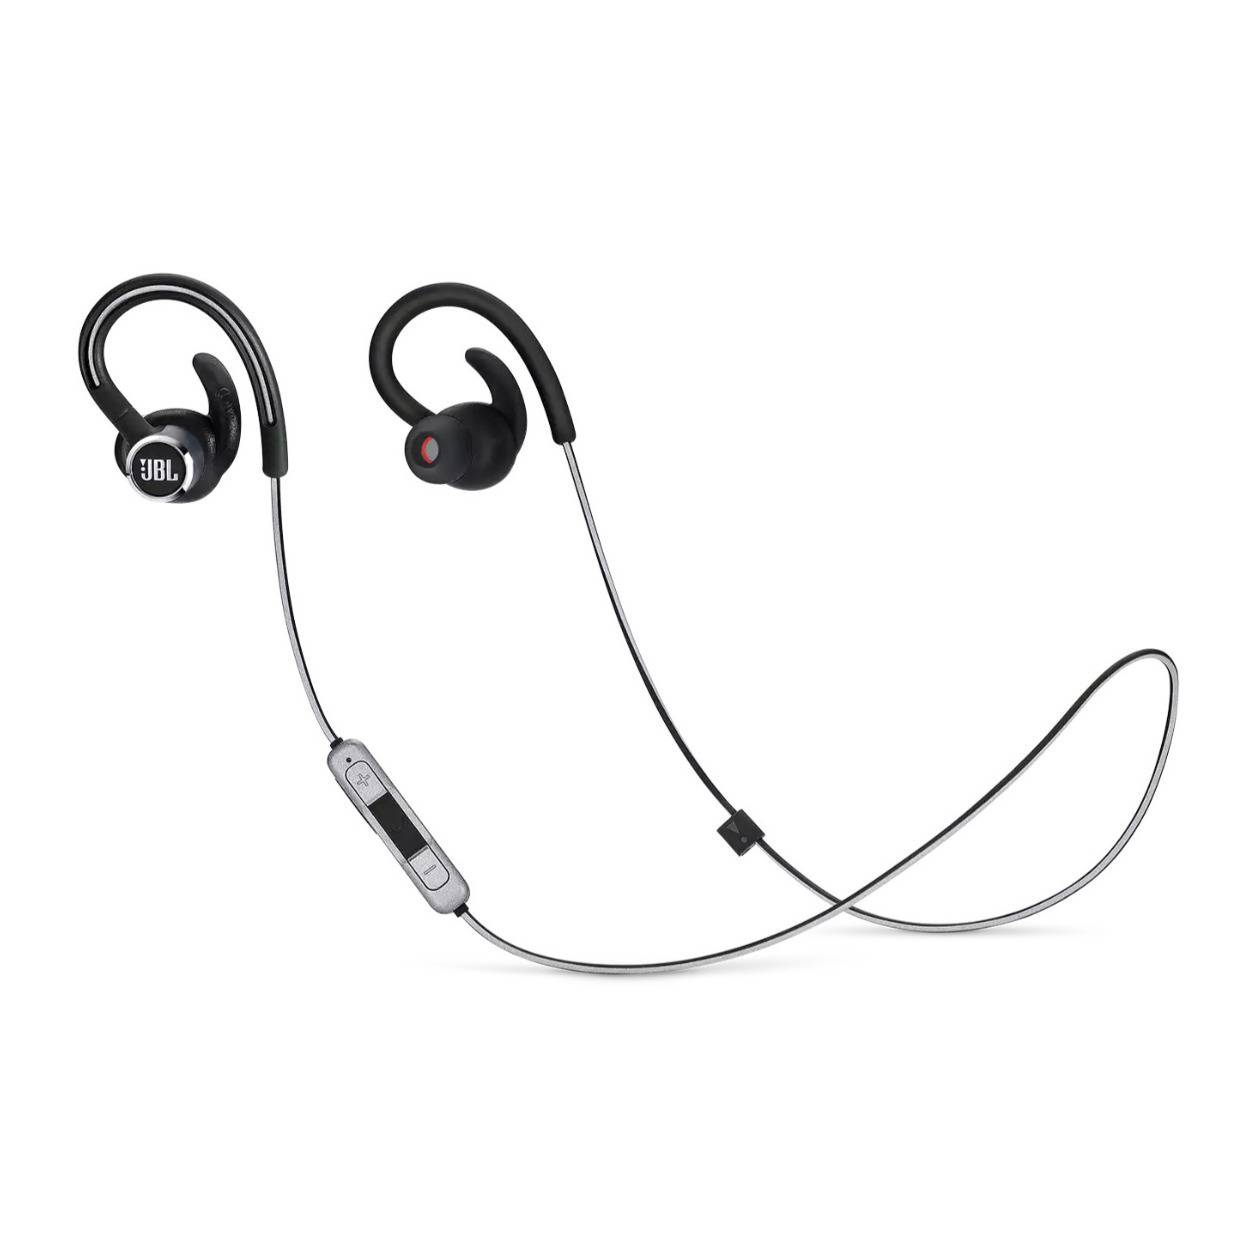 JBL Reflect Contour 2 Wireless Sport in-Ear Headphones with Three-Button Remote and Microphone (Black)